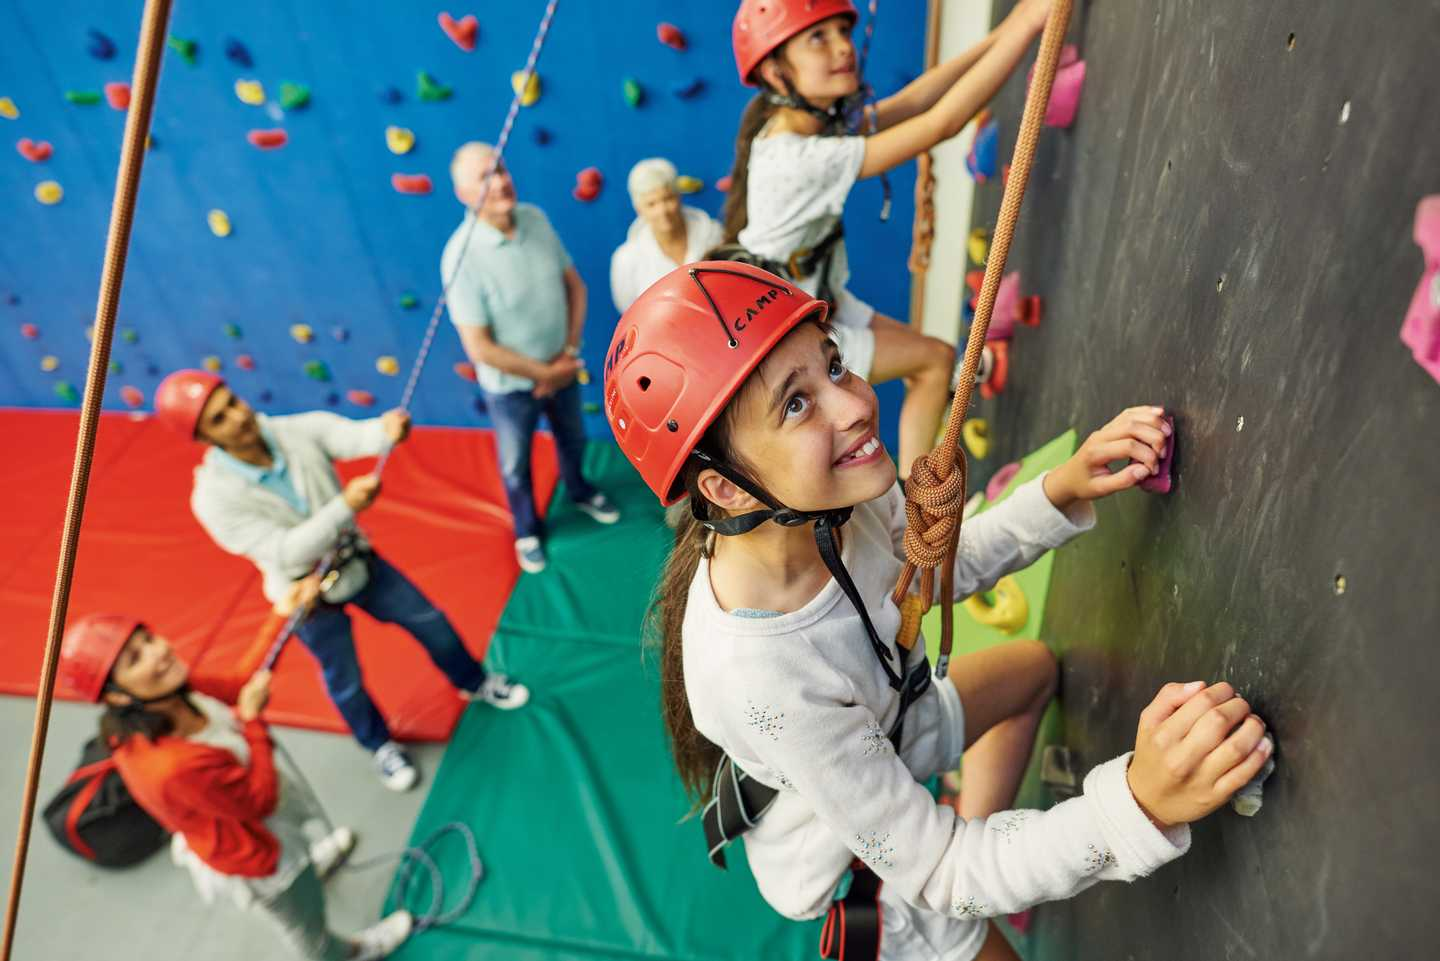 Climbing session on climbing wall